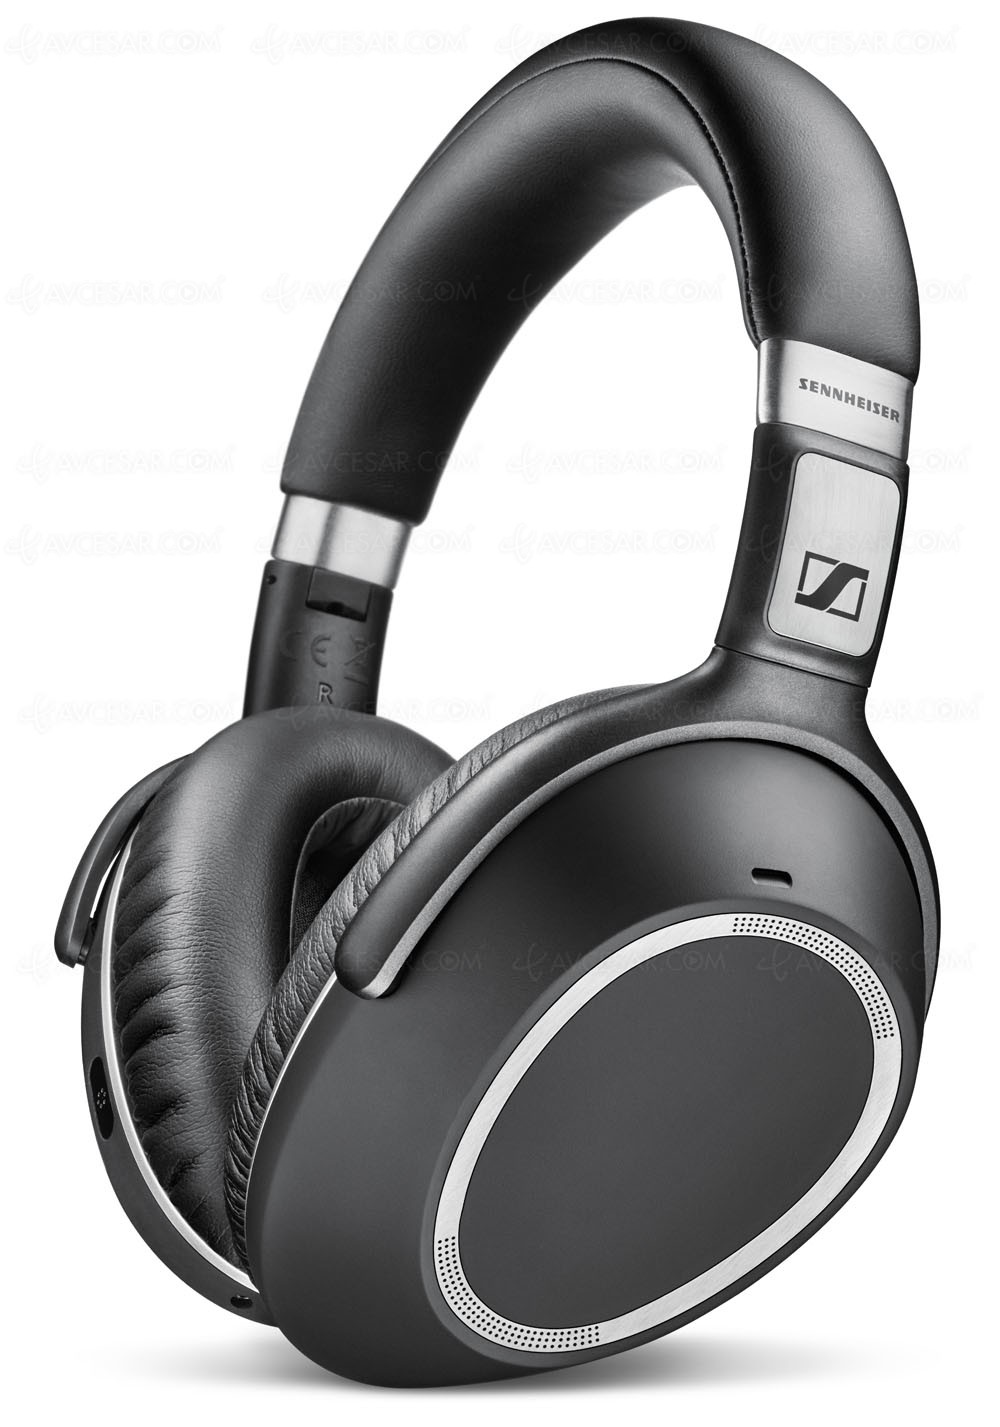 sennheiser pxc 550 wireless casque bluetooth avec r duction de bruit adaptative. Black Bedroom Furniture Sets. Home Design Ideas